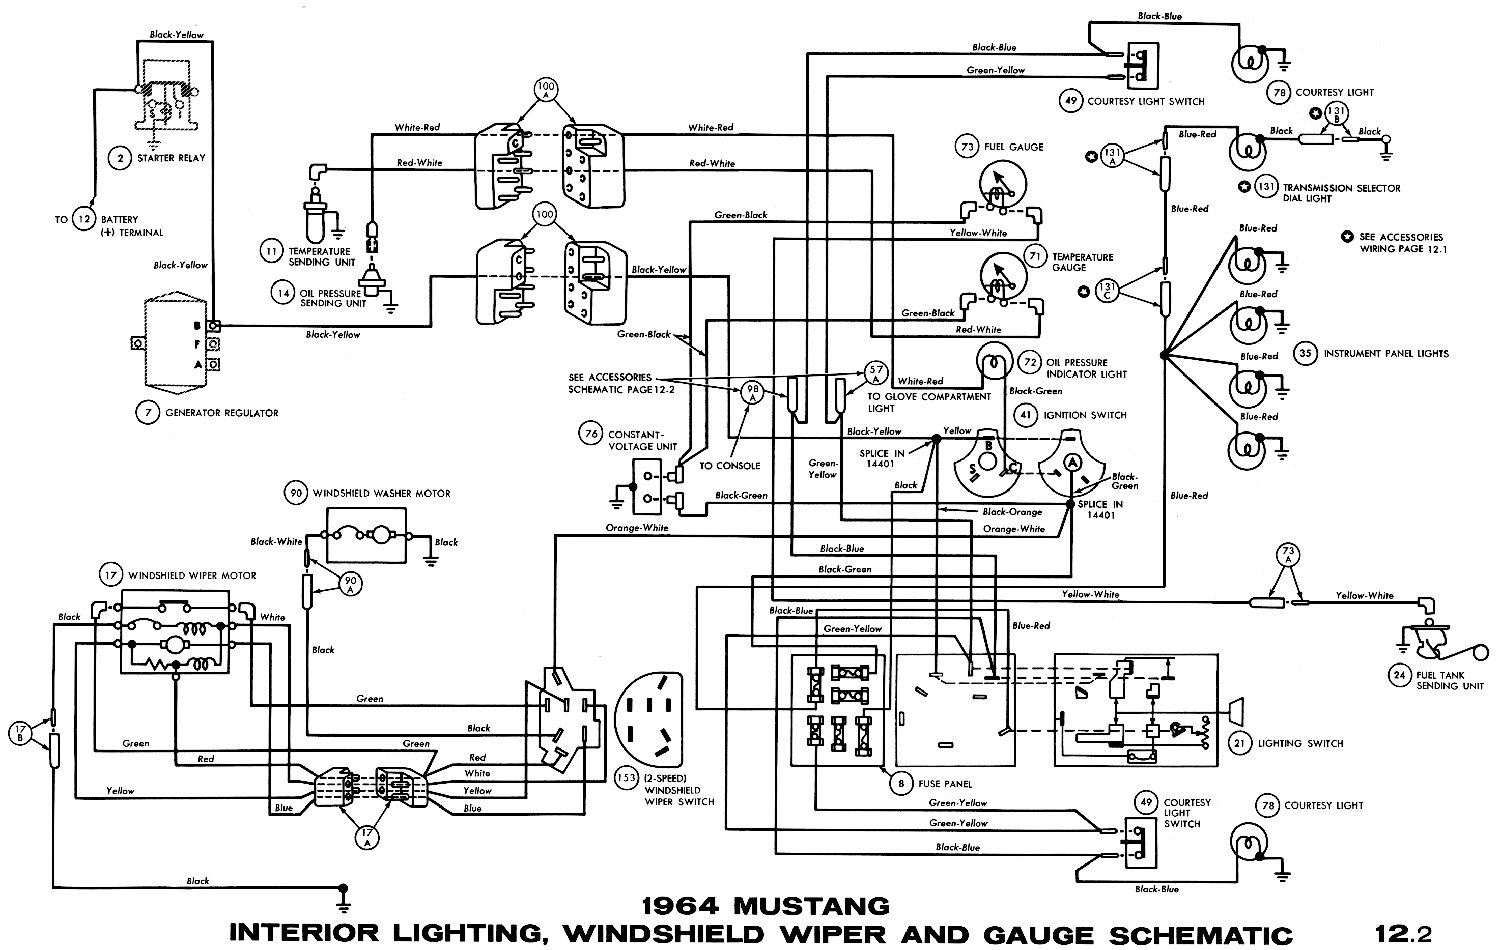 washer schematic wiring diagram